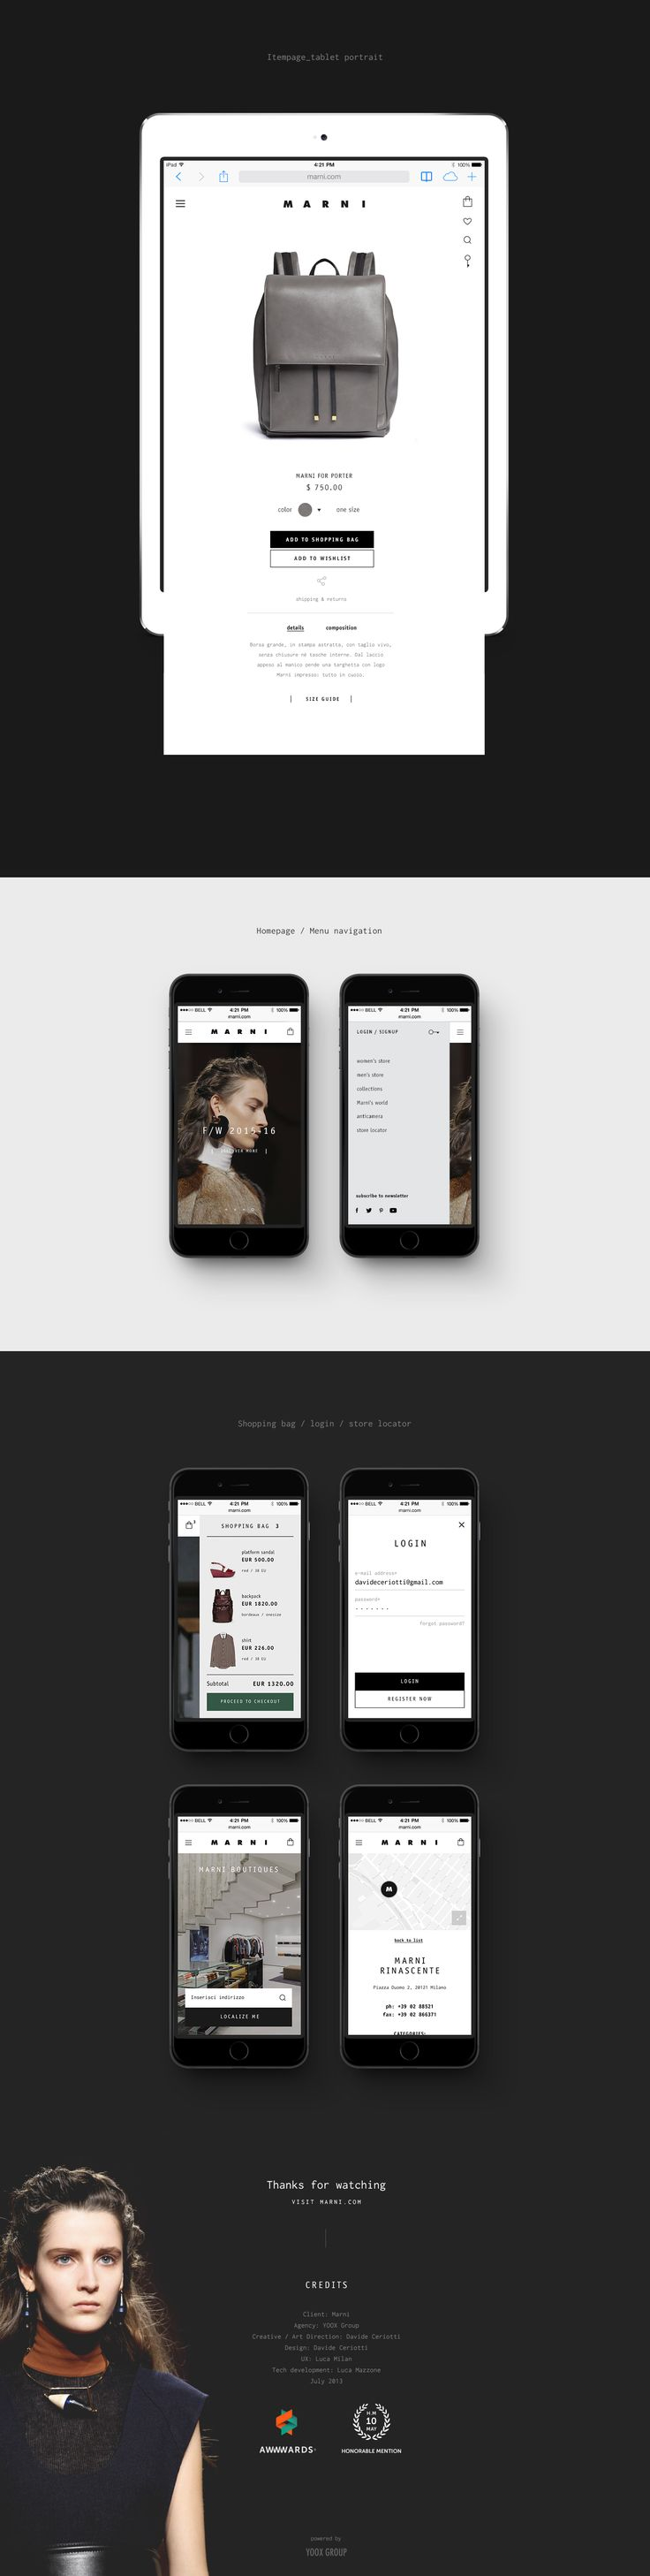 """Italian fashion label Marni is amplifying the efforts for its 20th anniversary with a new Web site design that blends content and commerce. Marni worked with Yoox Group, which haspowered its ecommerce since its launch in 2006, to improve the user experi…"